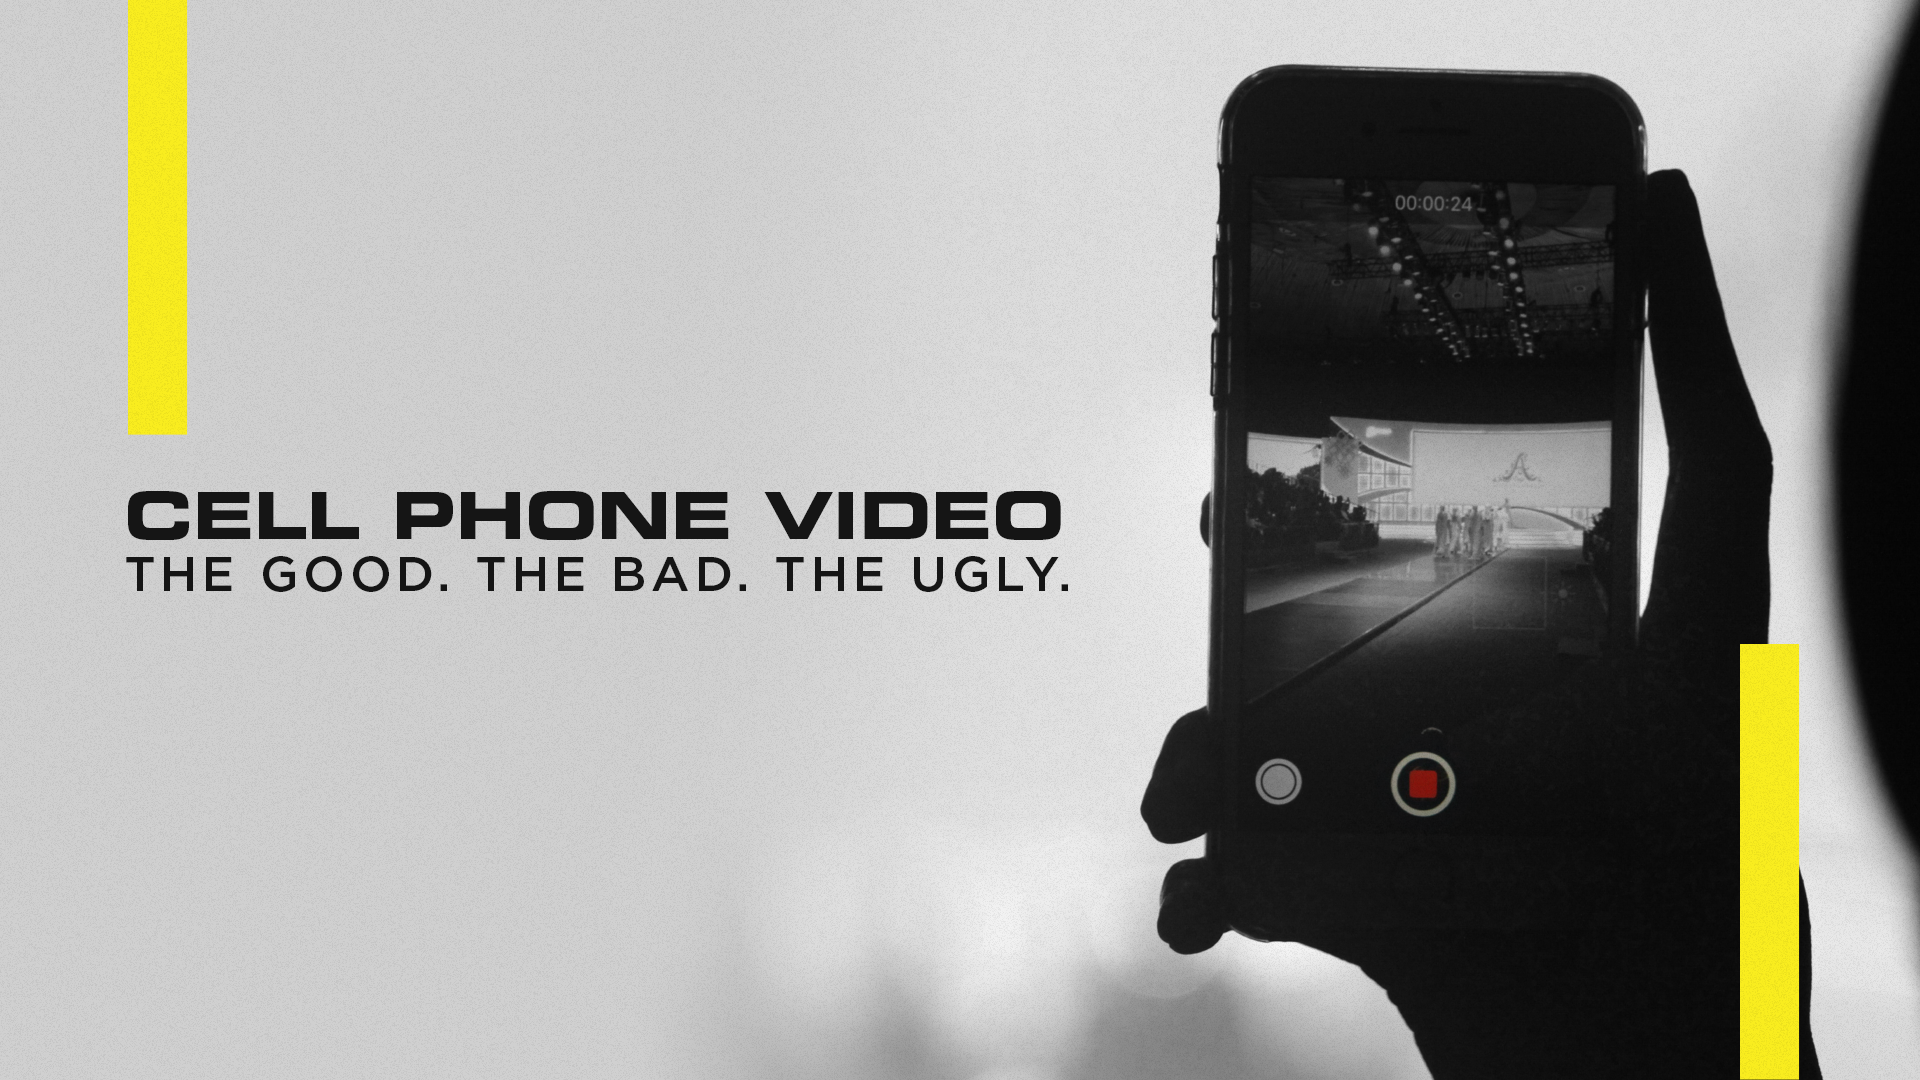 Cell Phone Video: The Good, The Bad, The Ugly